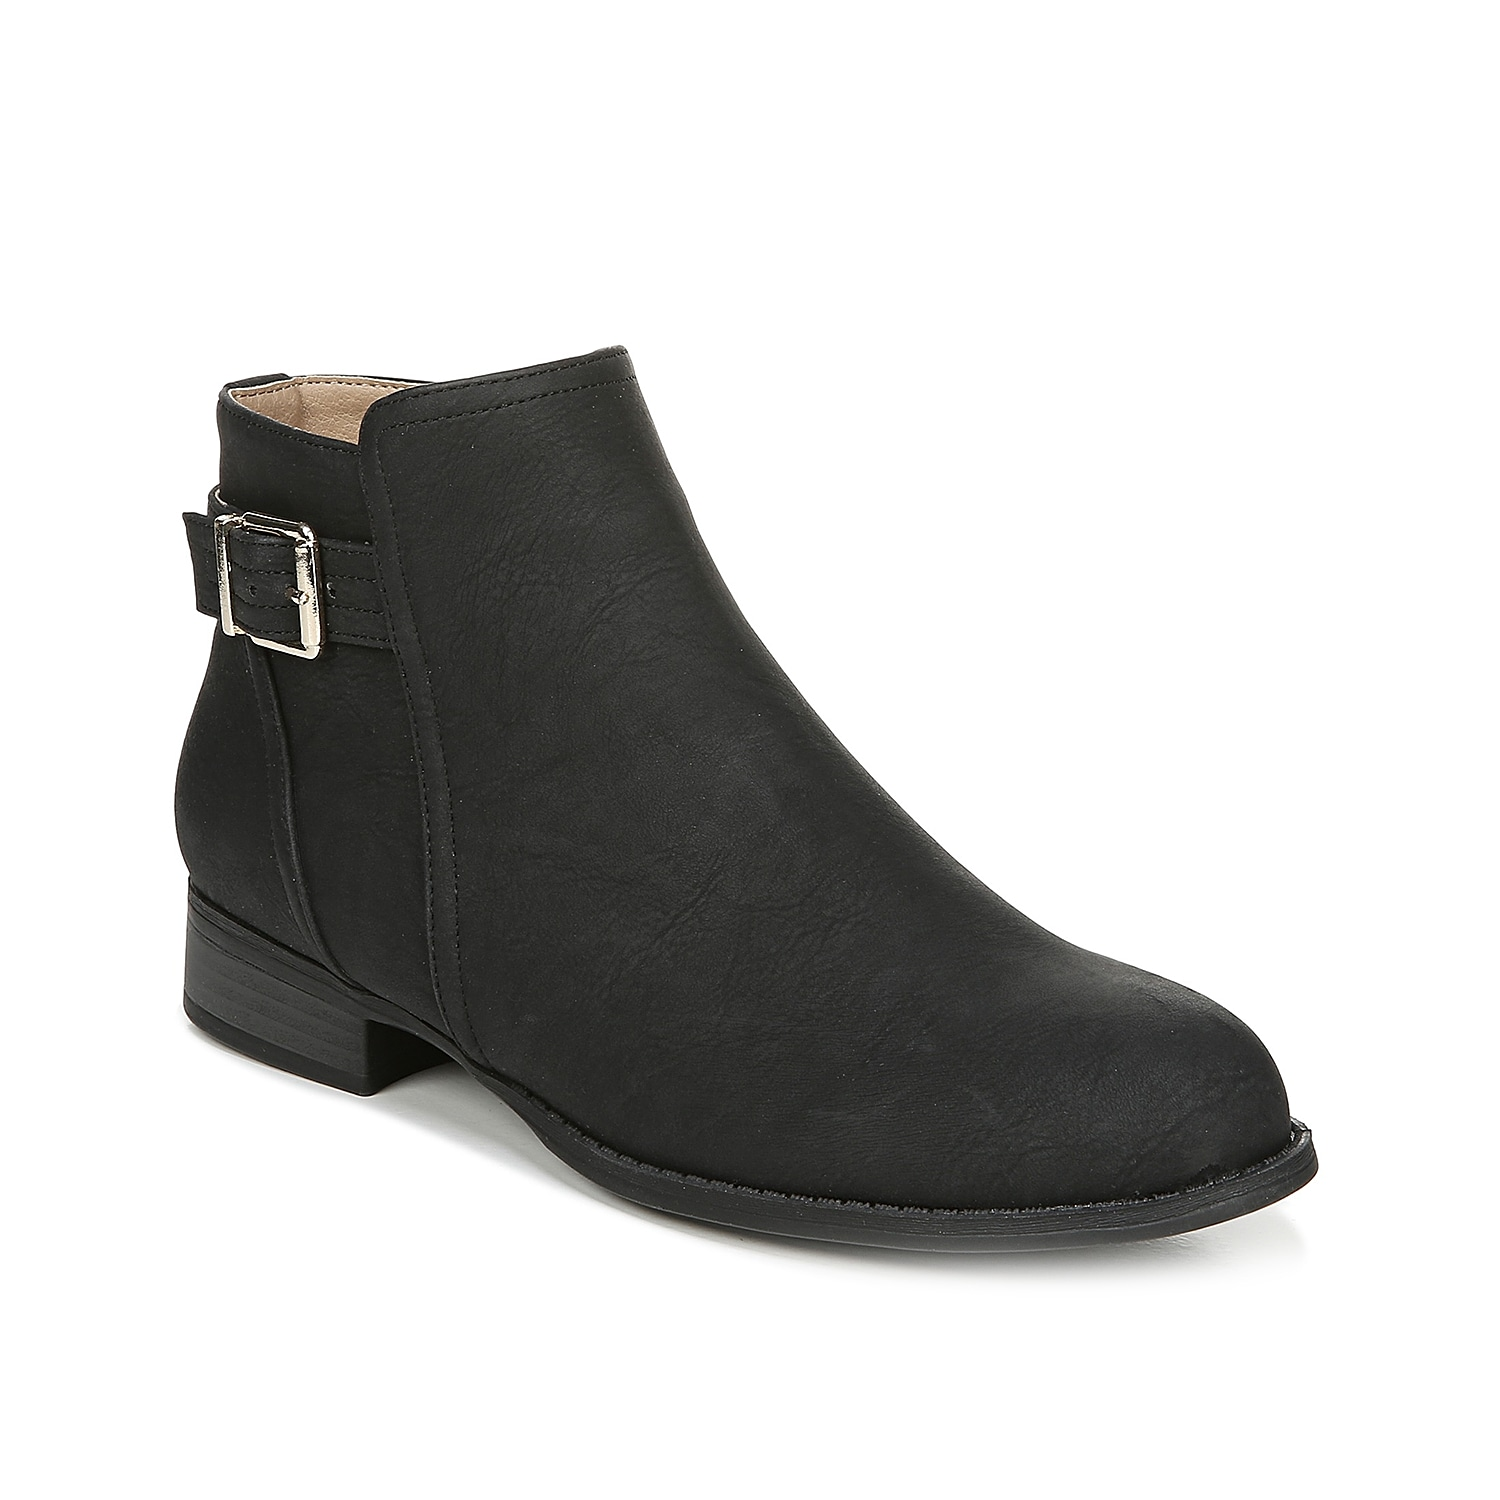 Streamline your look with the Fiery bootie from LifeStride. These ankle boots feature a bold buckle at the topline and a low block heel for a hint of height. Click here for Boot Measuring Guide.